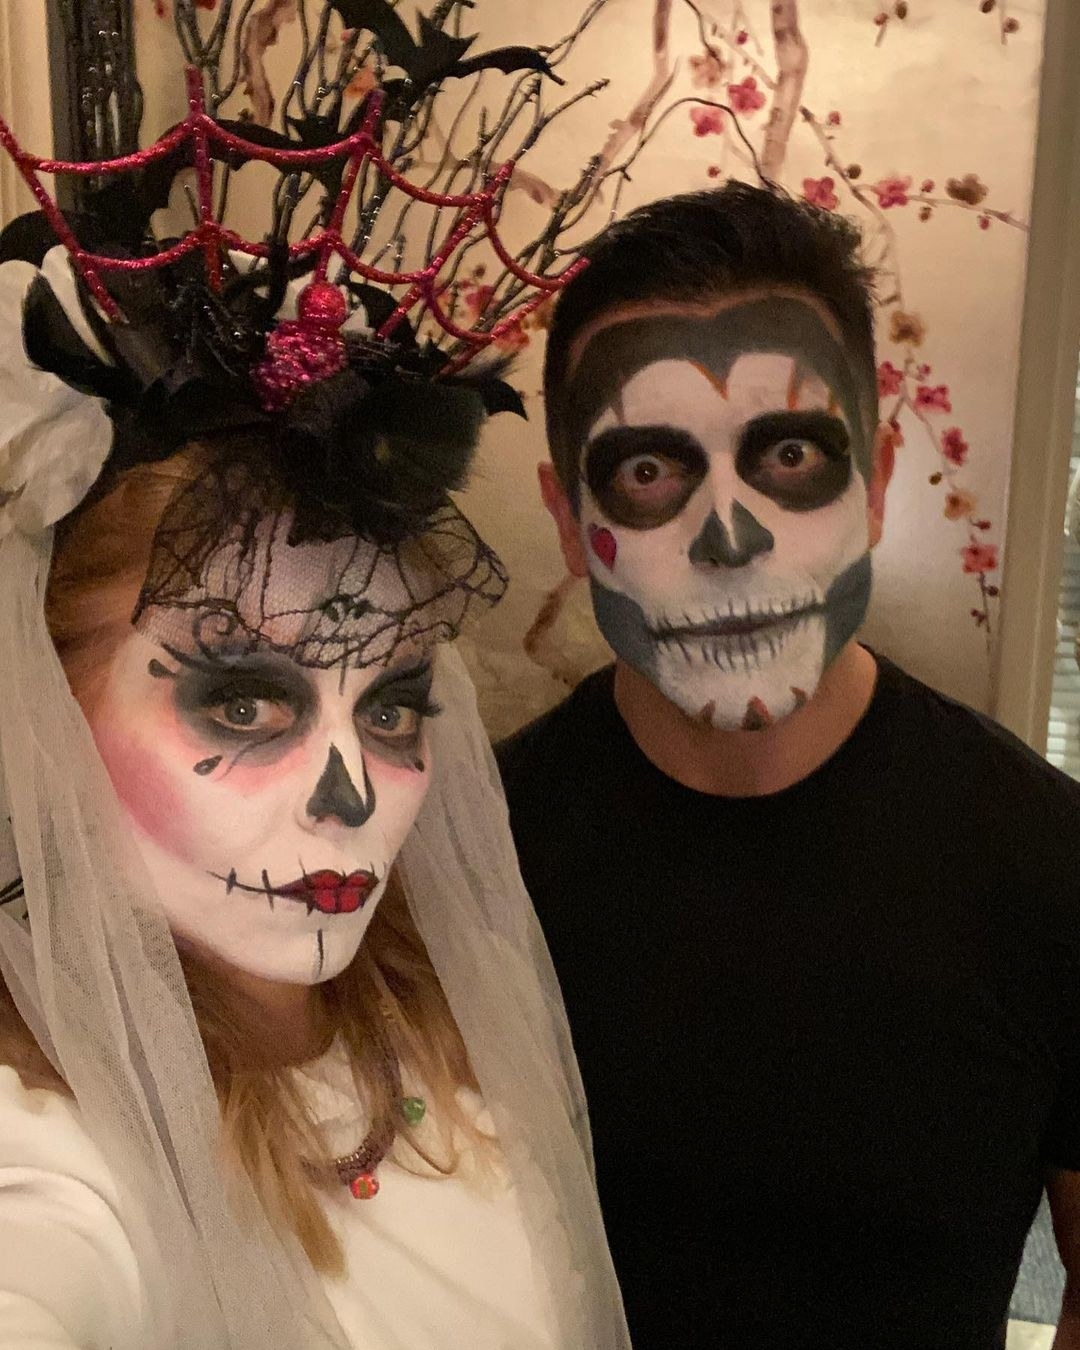 Kelly and Mark dressed as skulls for Halloween